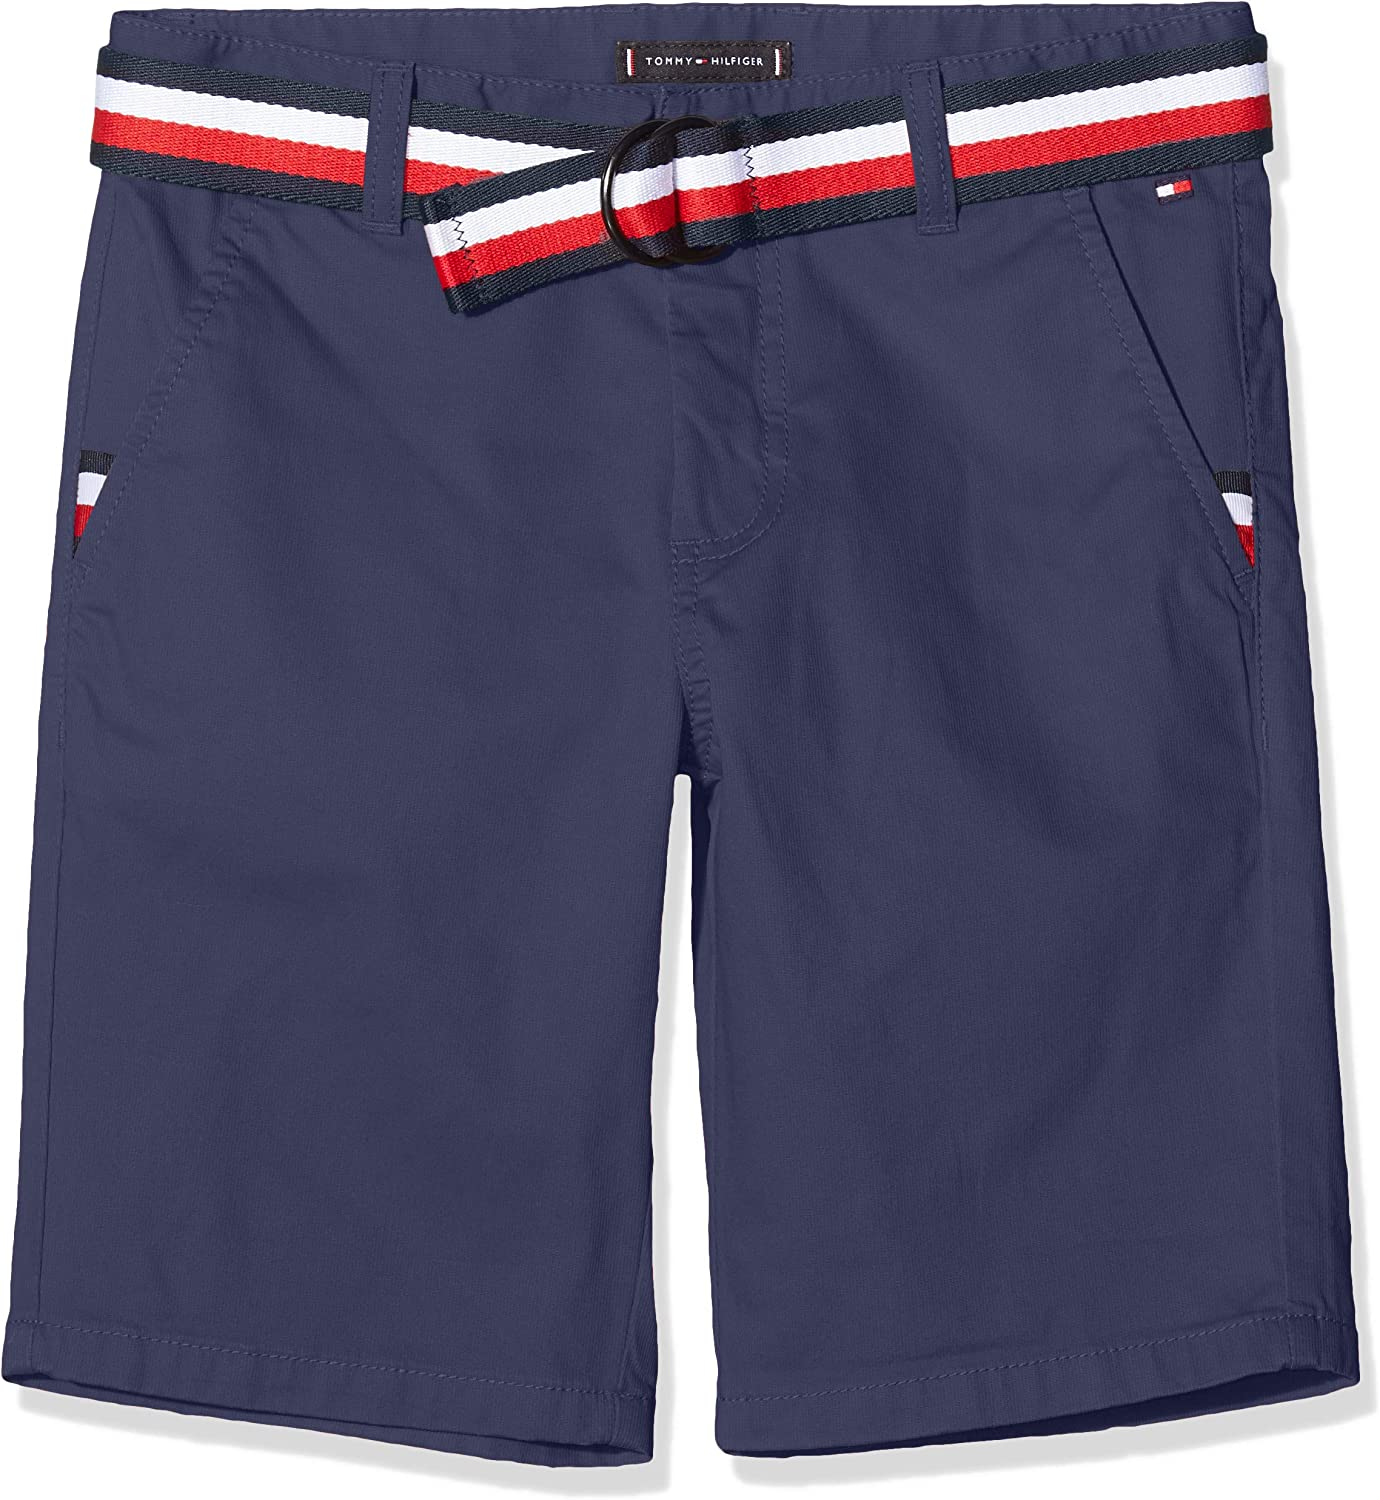 6-7 Years Size:6 Tommy Hilfiger Boys Essential Belted Chino Shorts Twilight Navy 654-860 C87 Blue